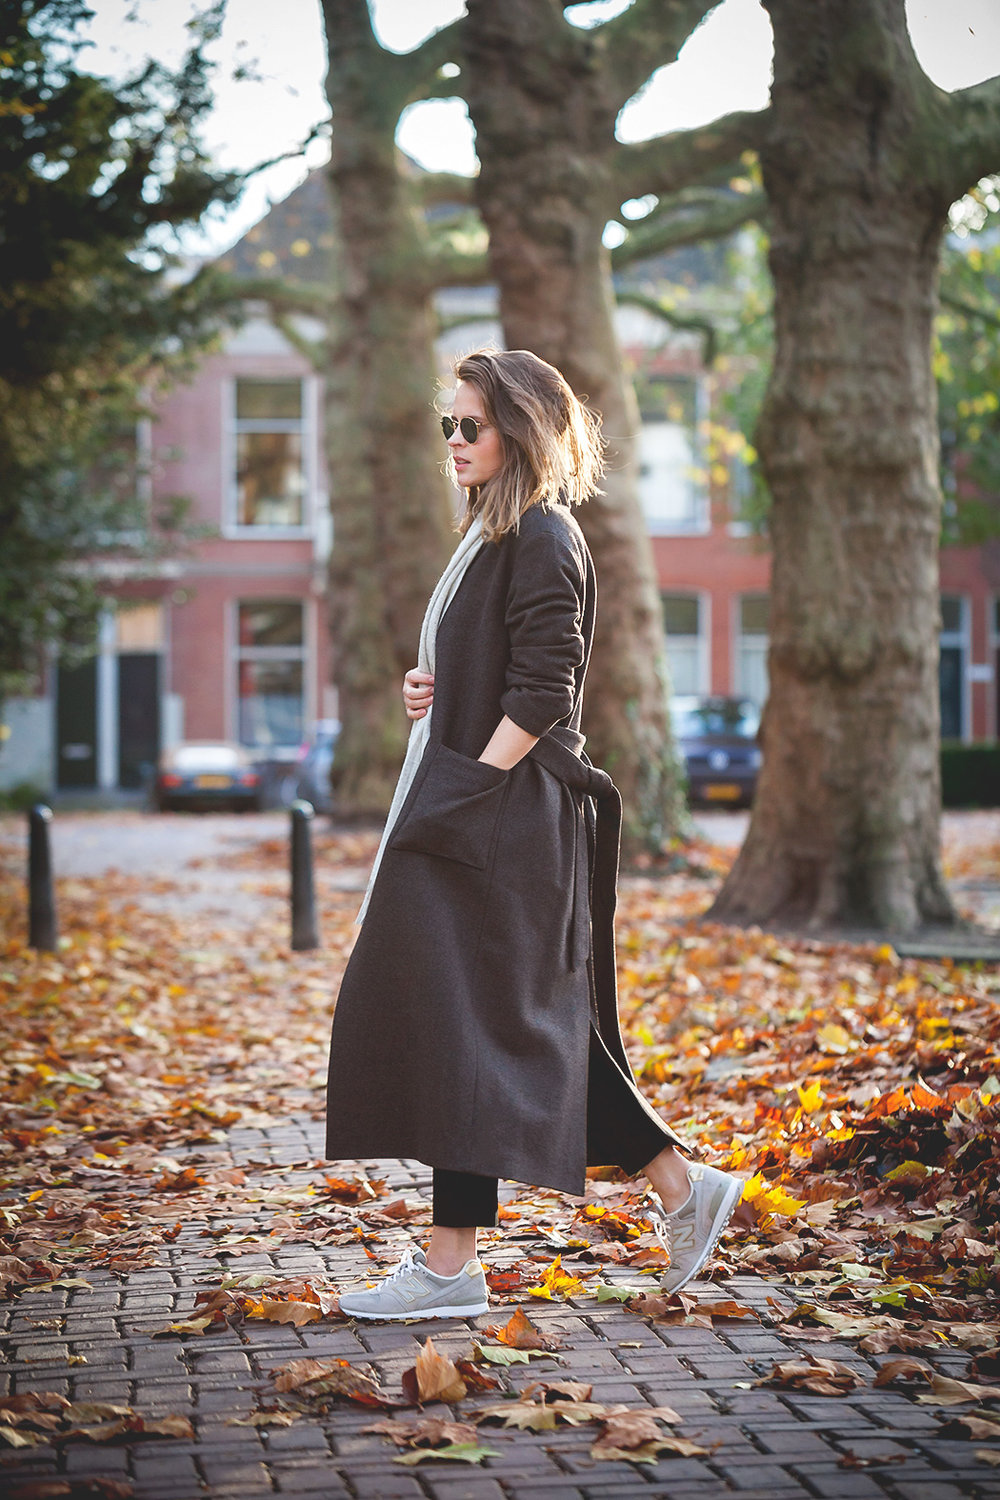 Long coats - fash-n-chips.com 01 -.jpg